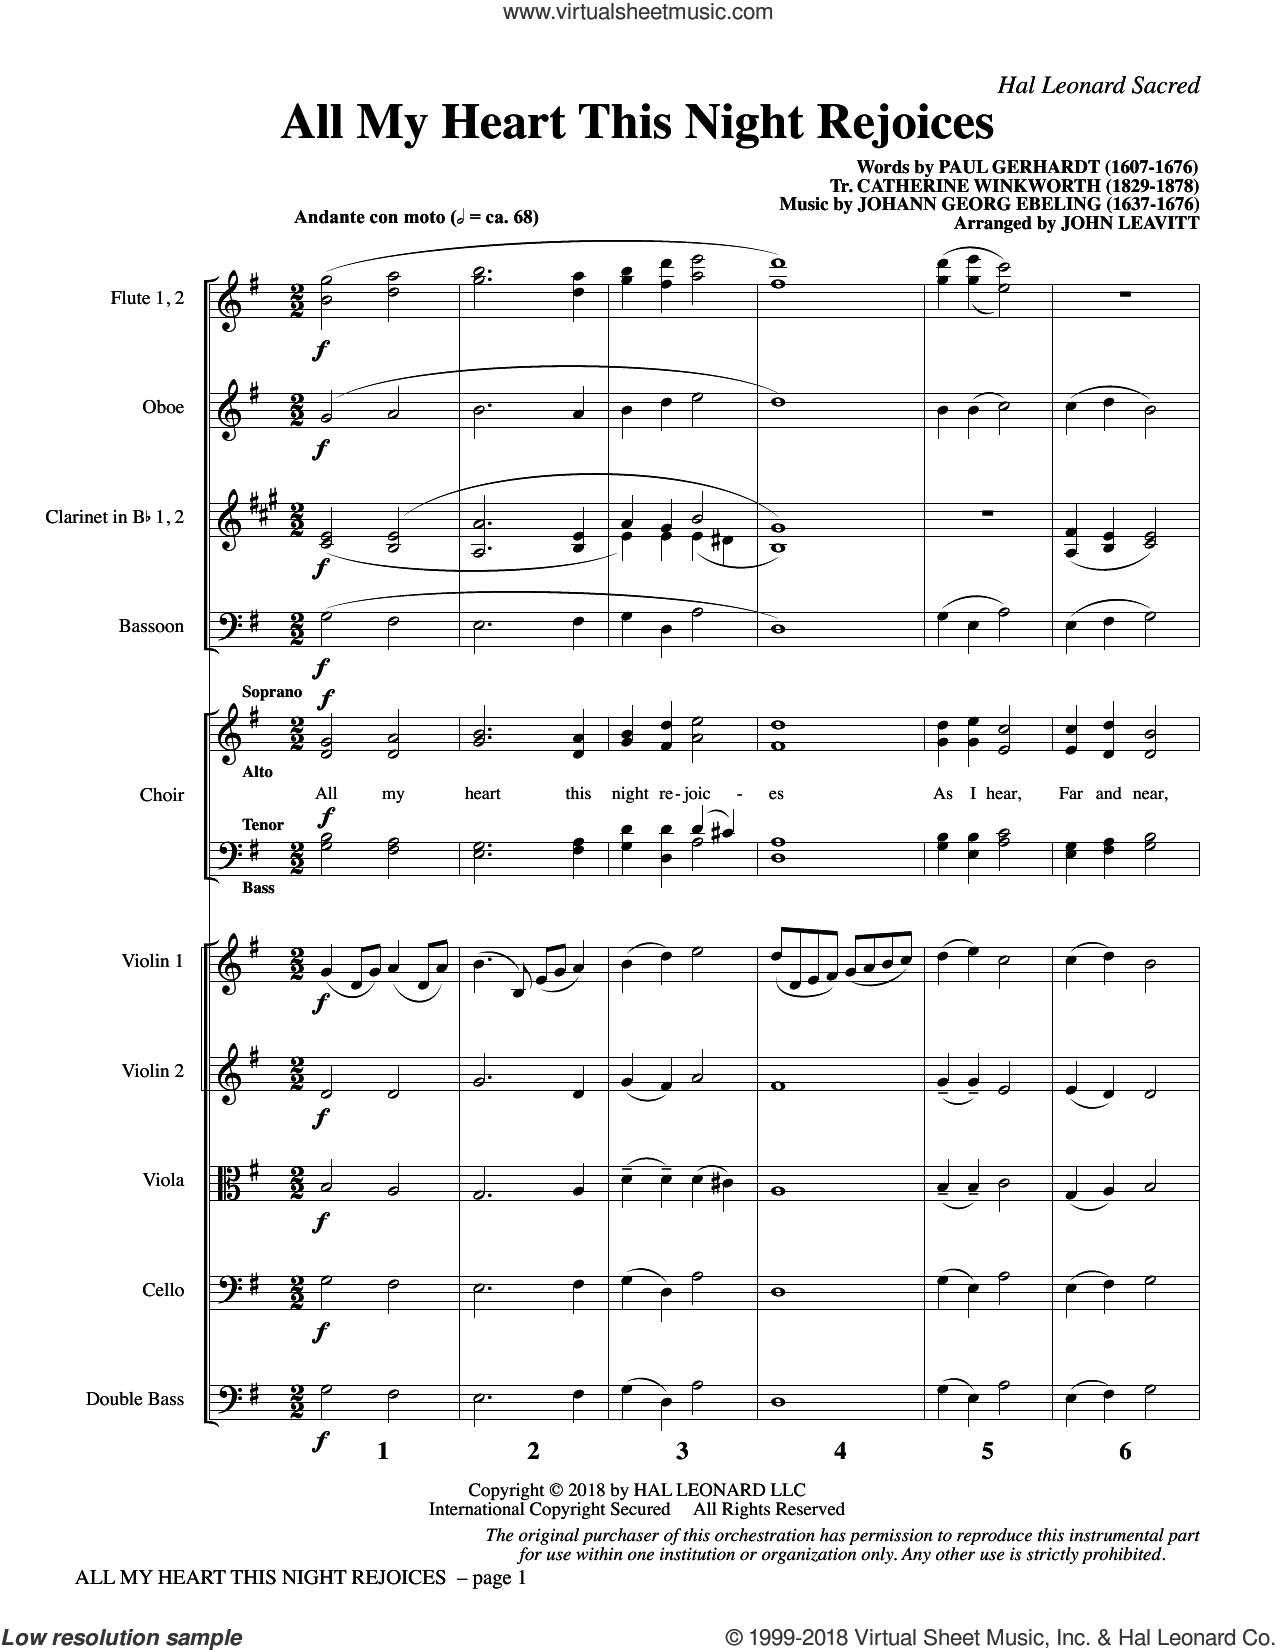 All My Heart This Night Rejoices (COMPLETE) sheet music for orchestra/band by John Leavitt, Catherine Winkworth, Johann Georg Ebeling and Paul Gerhardt, intermediate skill level